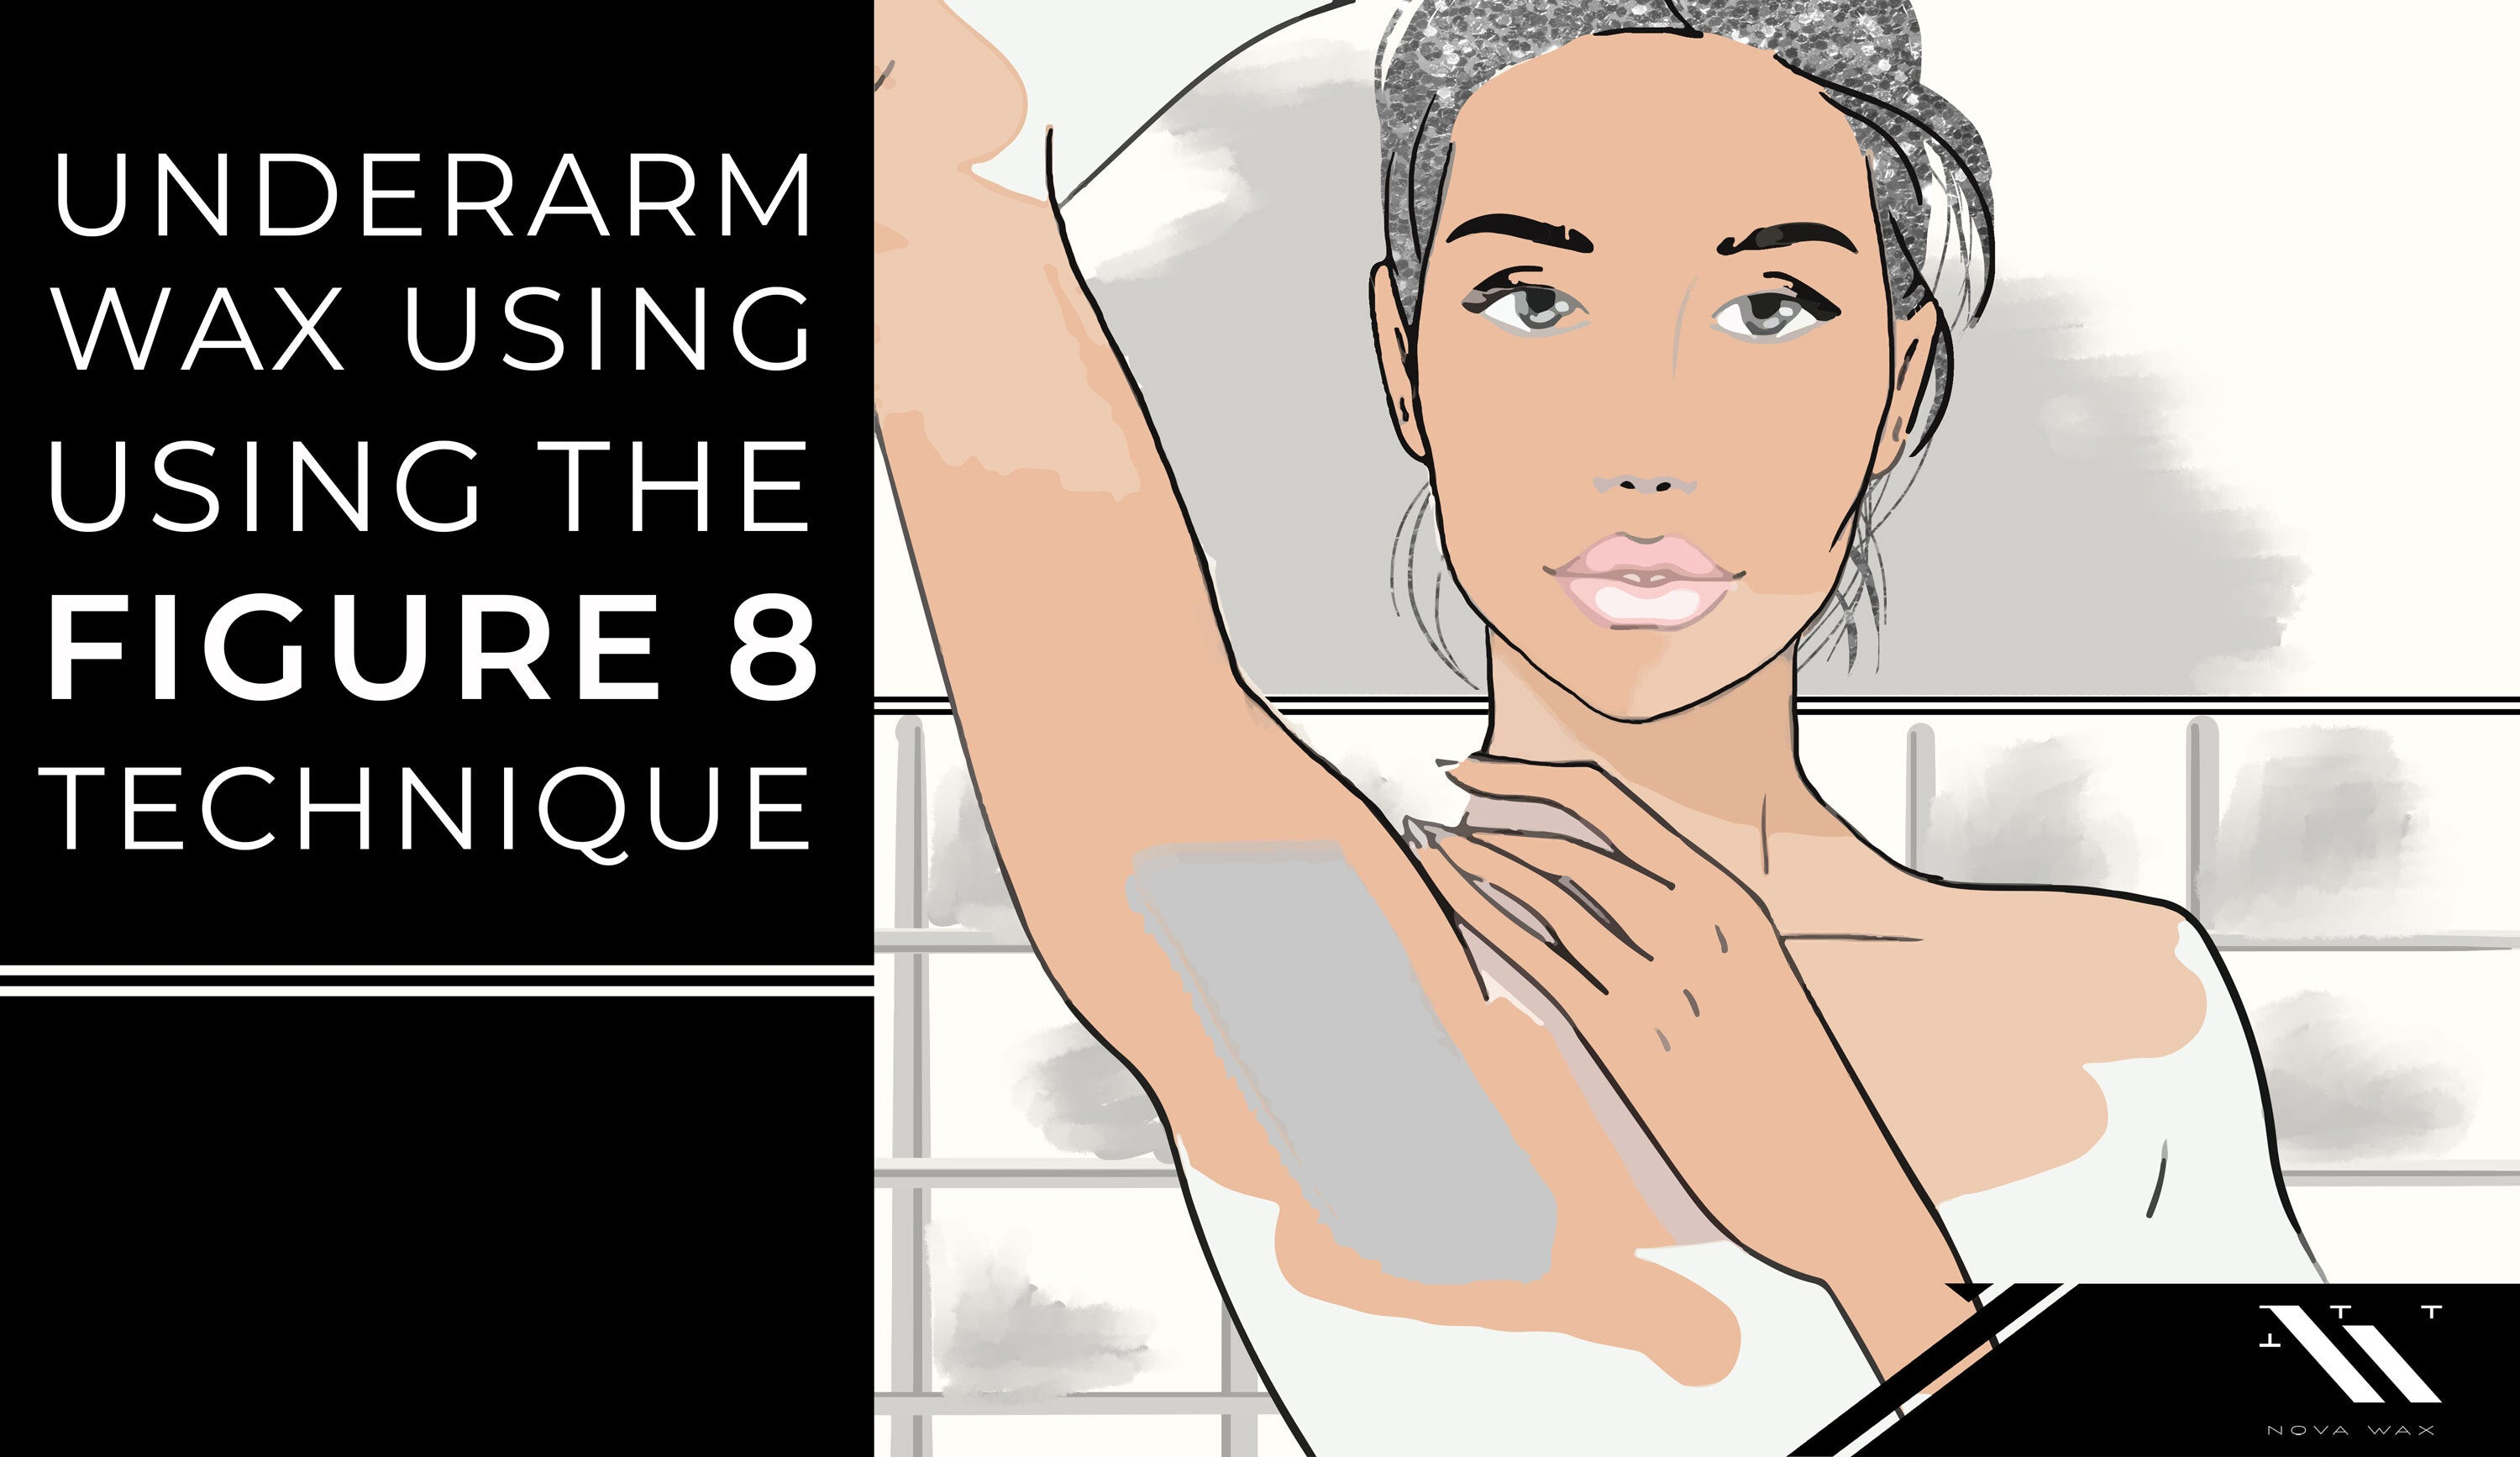 DIY Underarm Waxing Using the Figure 8 Technique